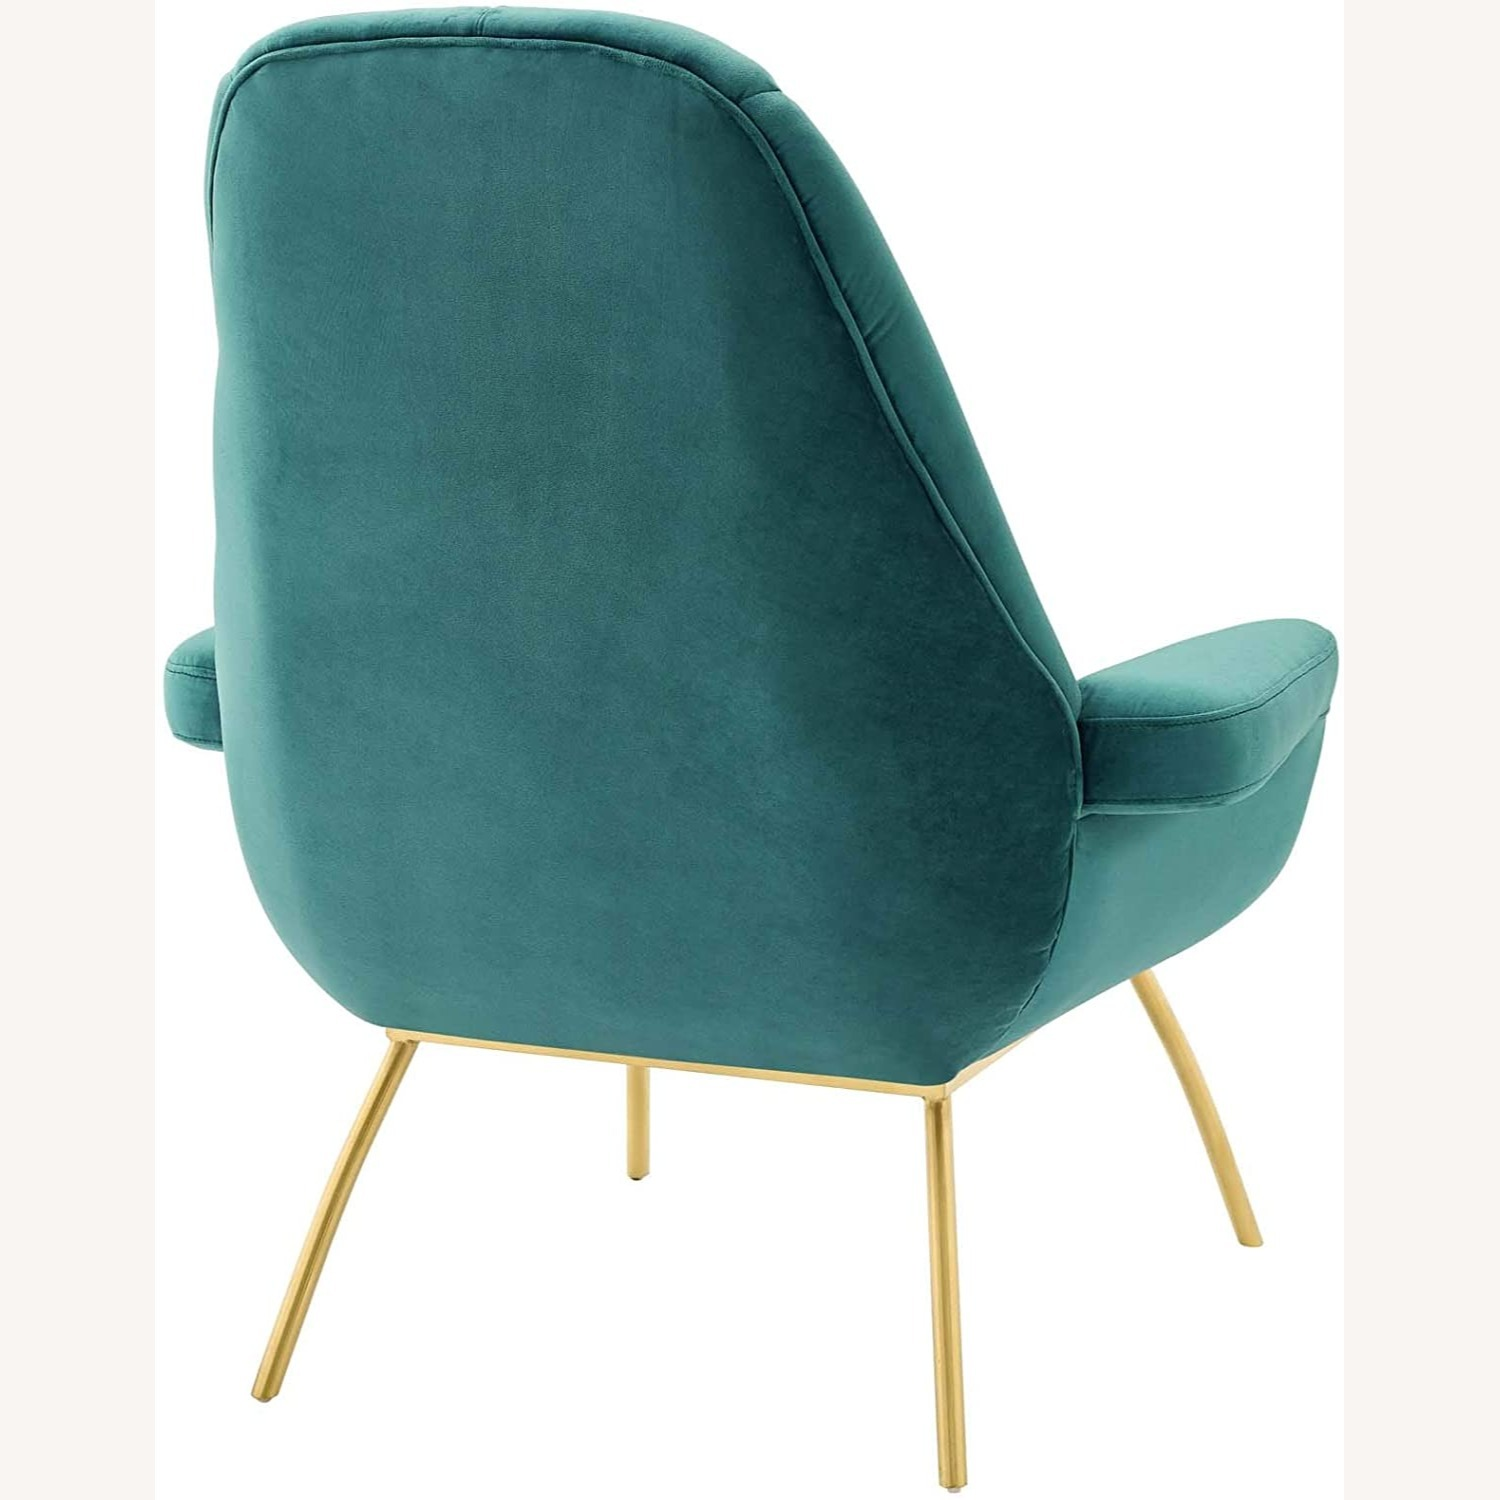 Accent Chair In Teal Velvet Upholstery Finish - image-2